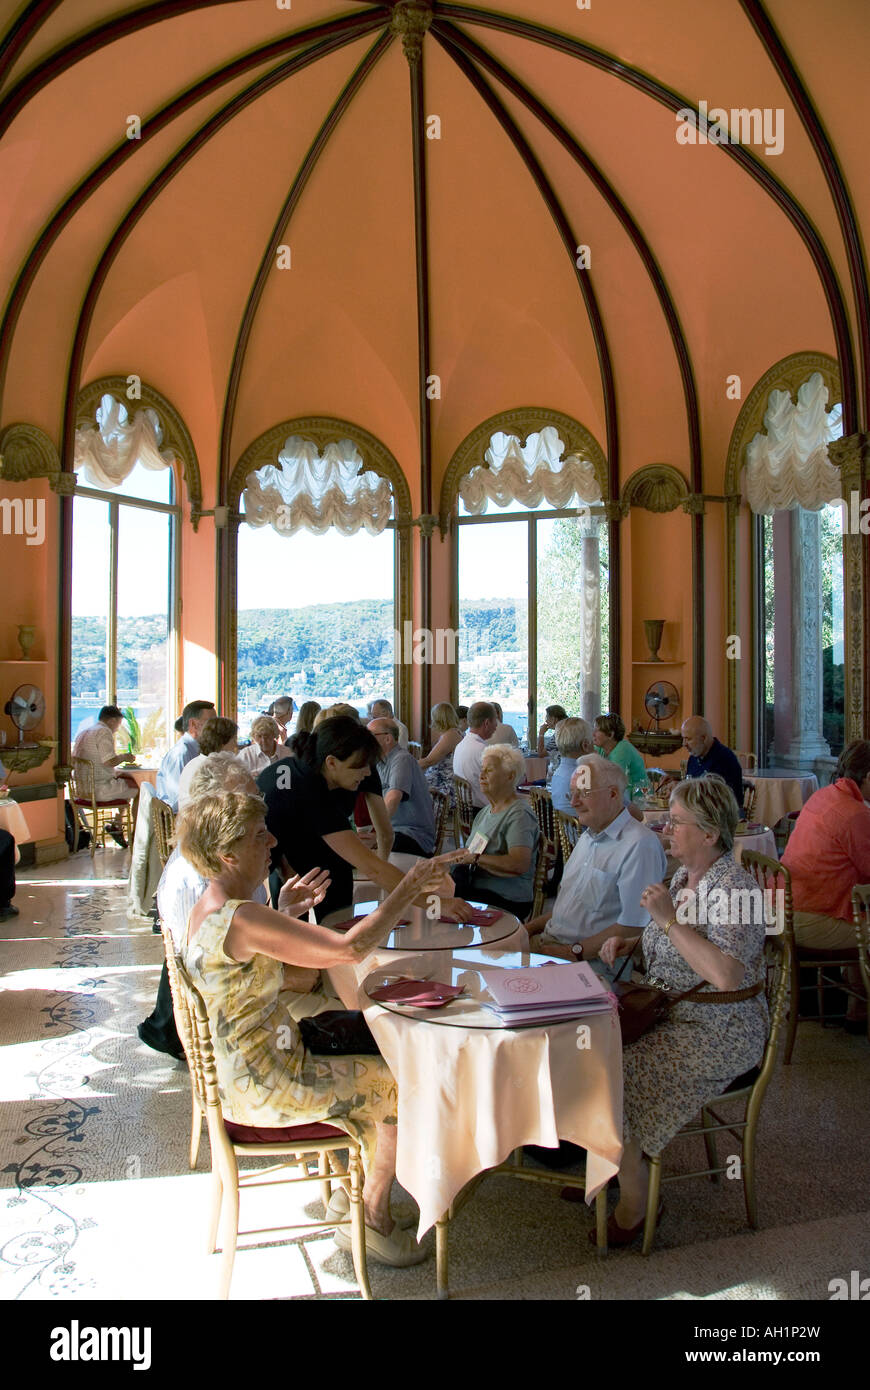 The cafe at the Villa Rothschild at Saint Jean Cap Ferrat near Nice, on the Cote d'Azur, southern France - Stock Image